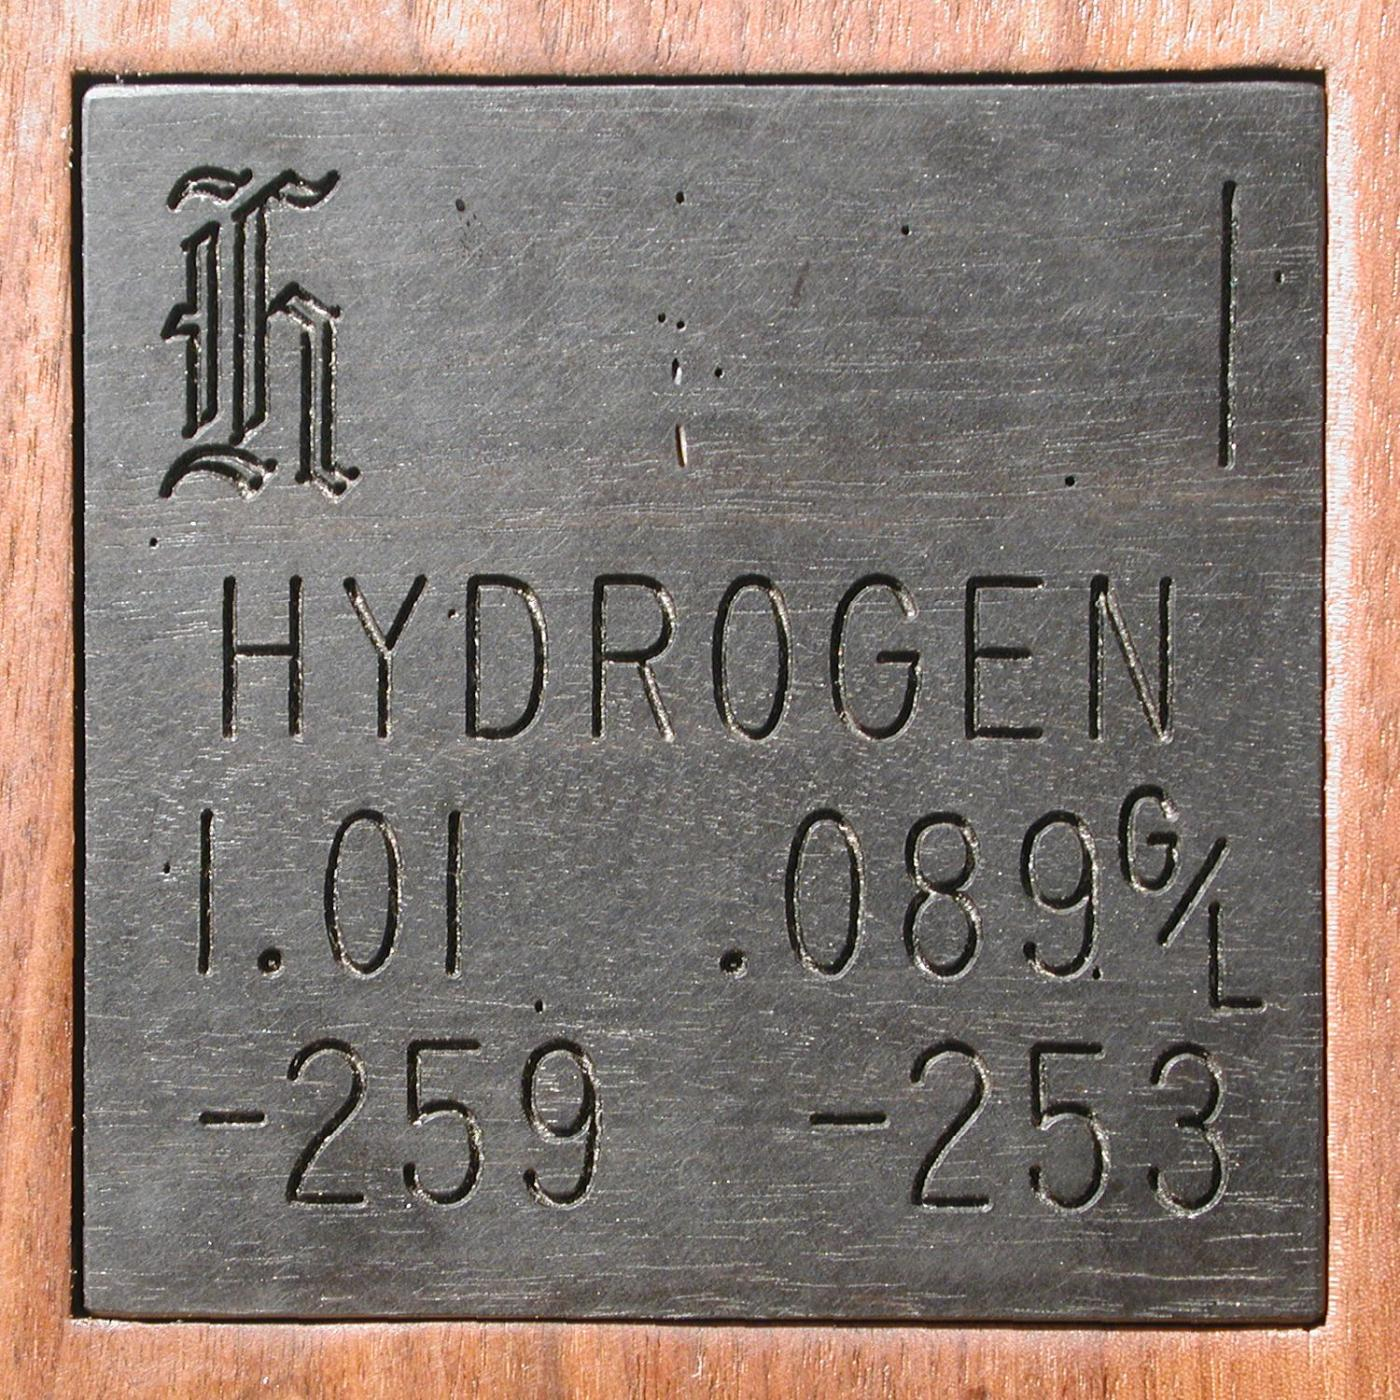 facts  pictures  stories about the element hydrogen in the